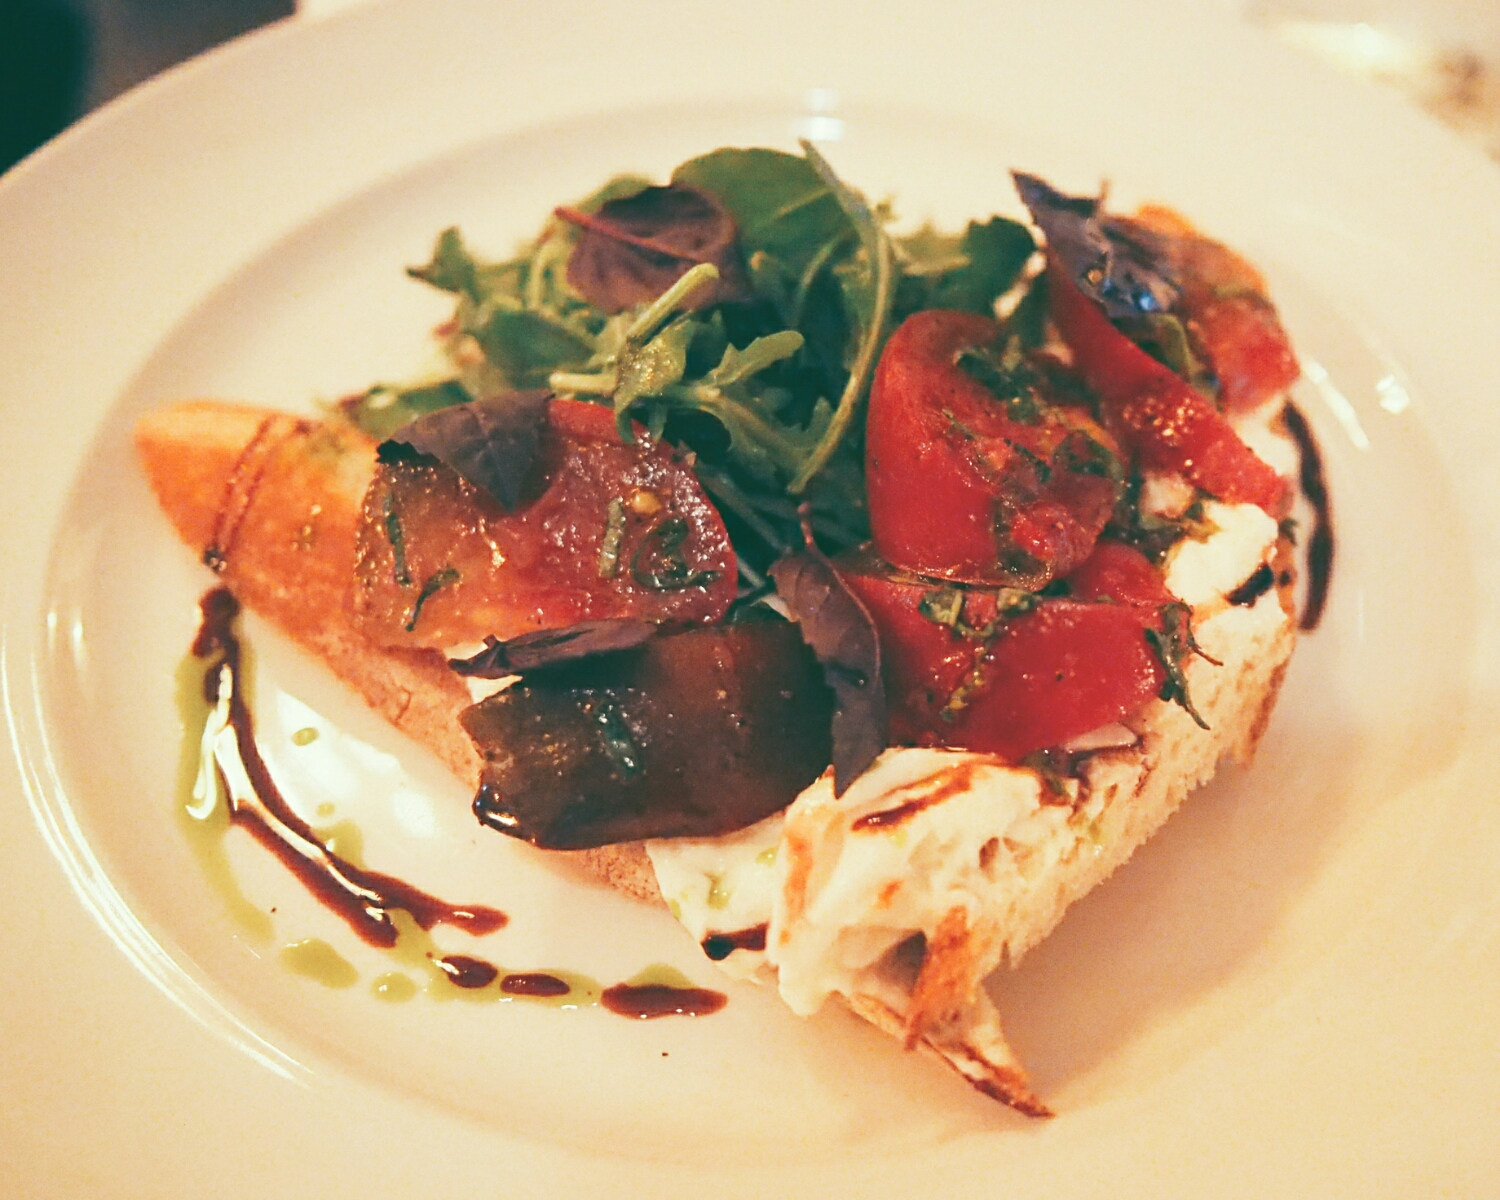 burrata caprese  with heirloom tomato, basil, mint, aged balsamic, arugula, extra virgin olive oil on baguette.